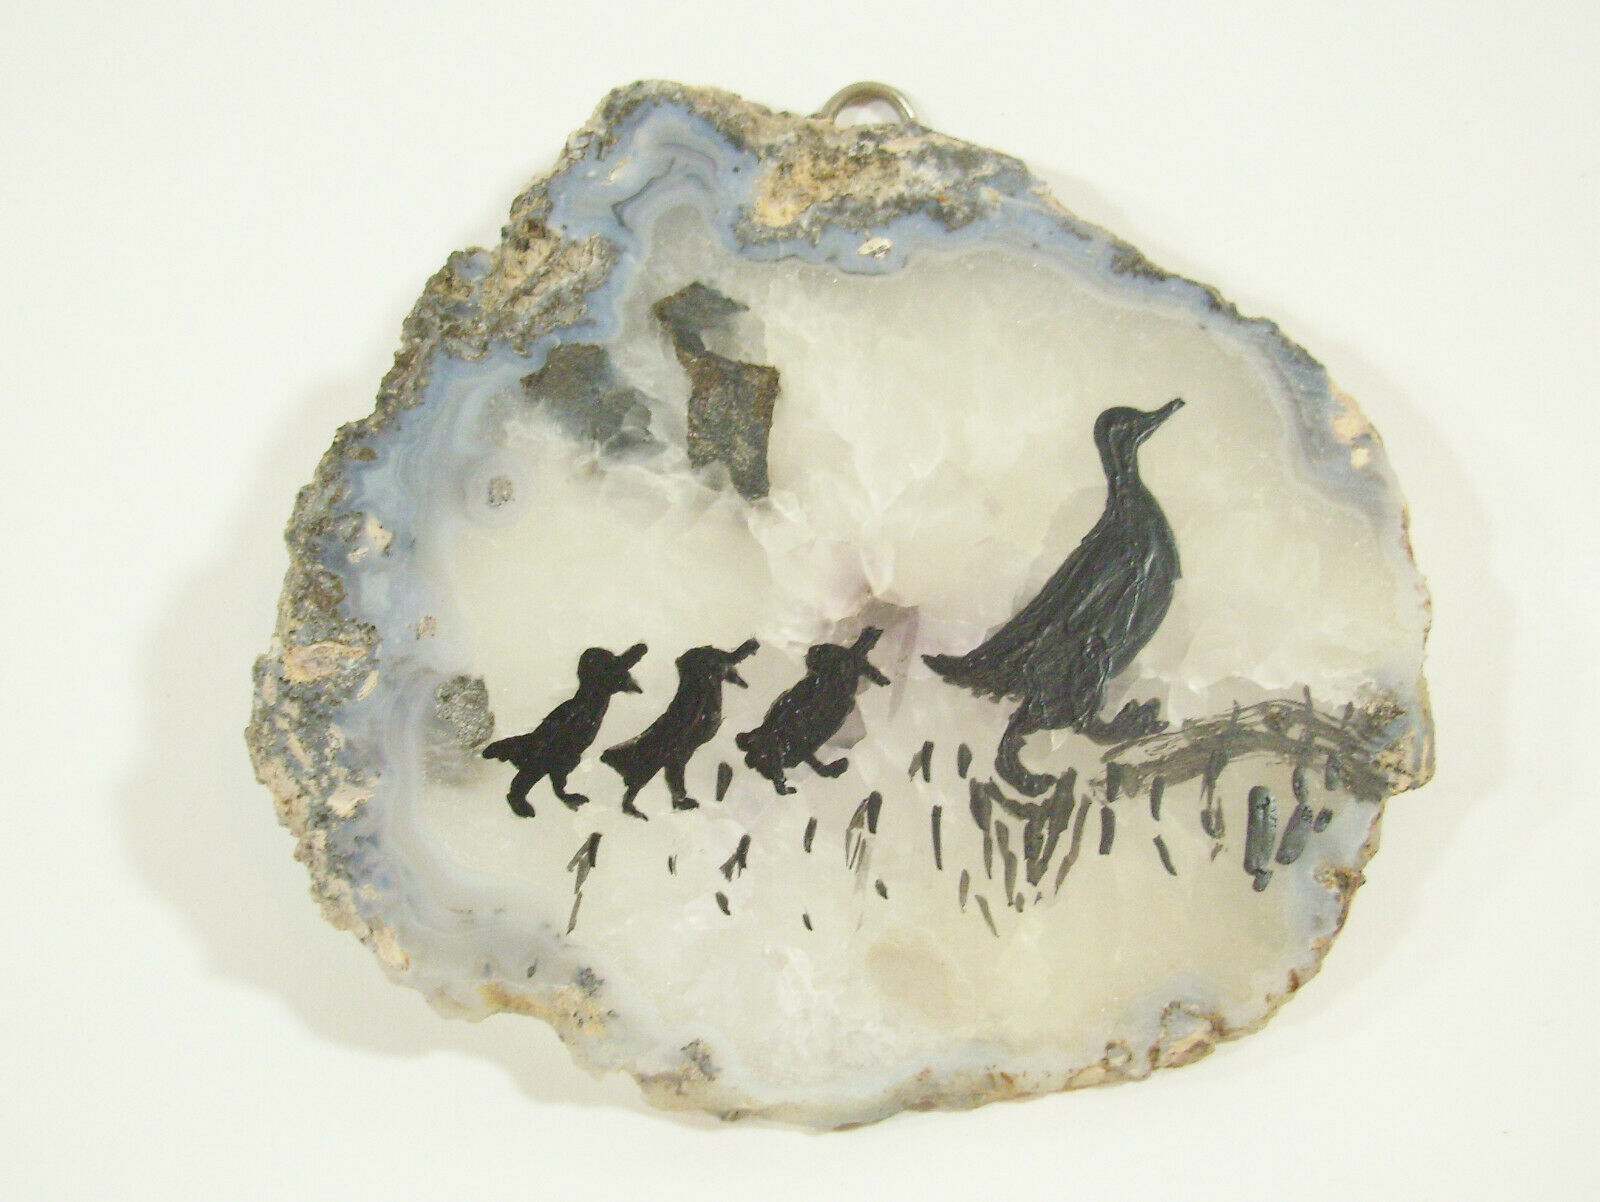 Silhouette Ducks Hand Painted on Geode Stone Slice Folk Art Wall Hanging Plaque image 7